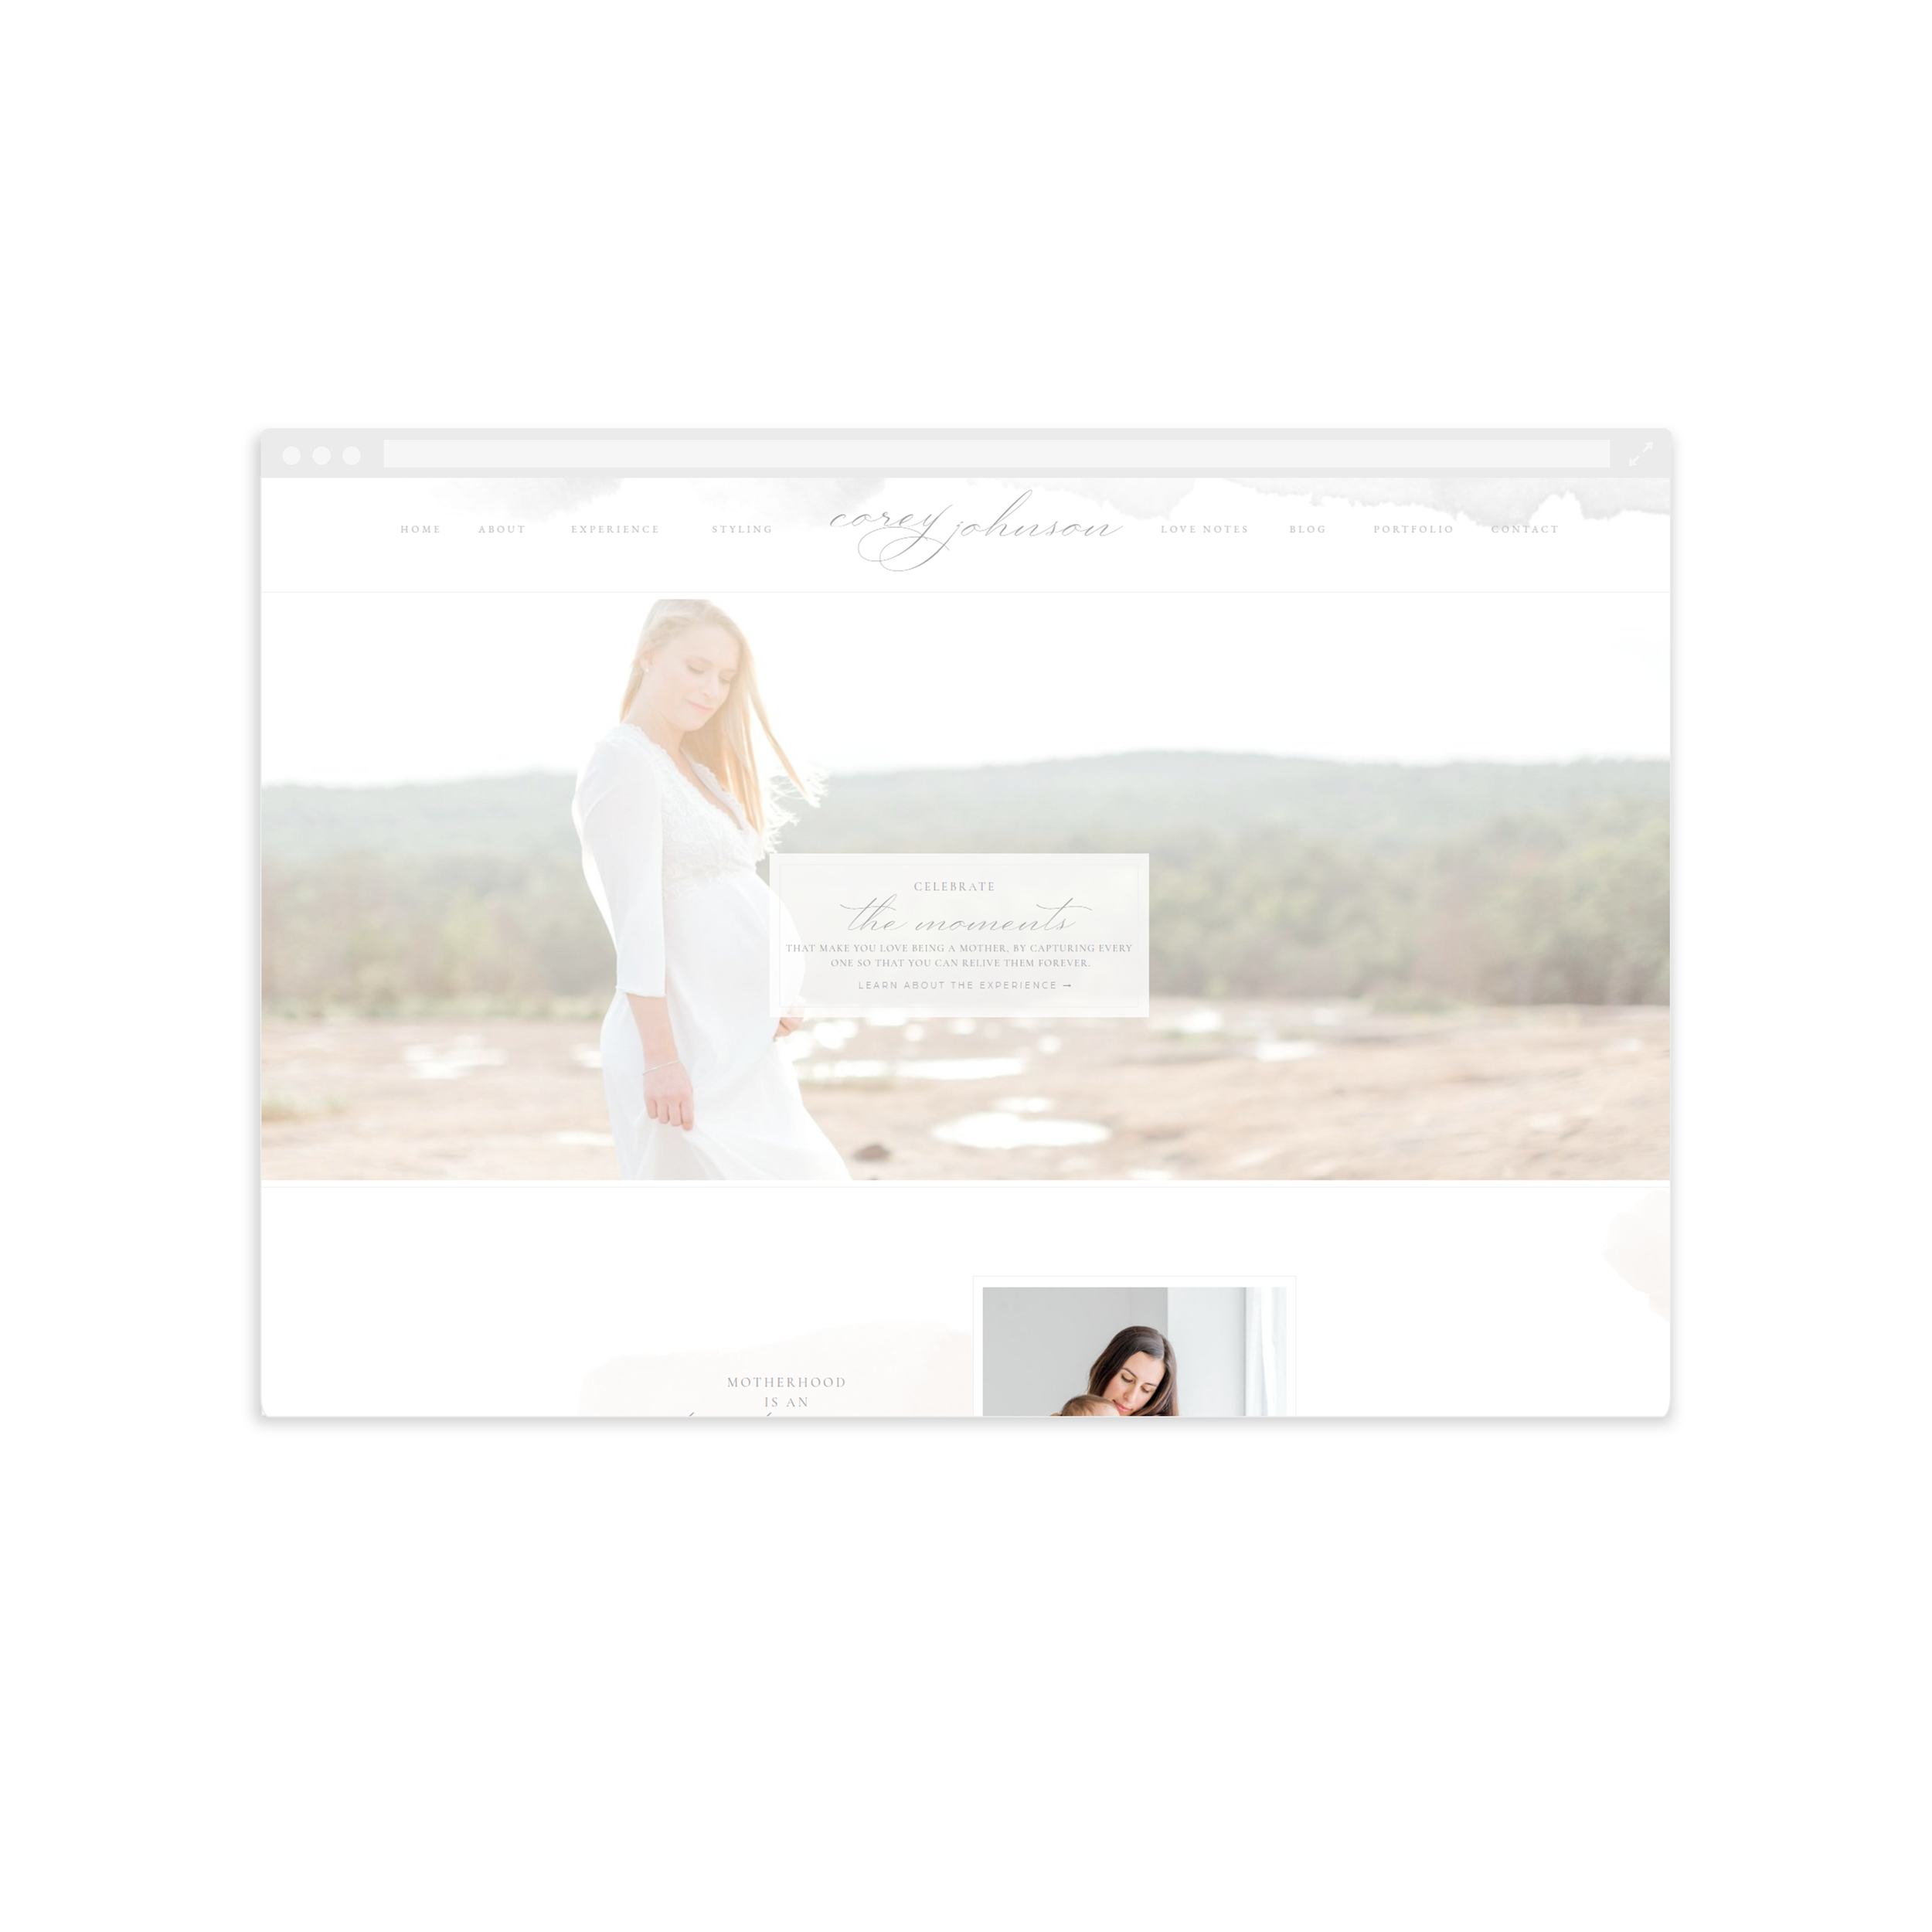 Showit Website for Corey Johnson Photography - By Magnolia Creative Studio